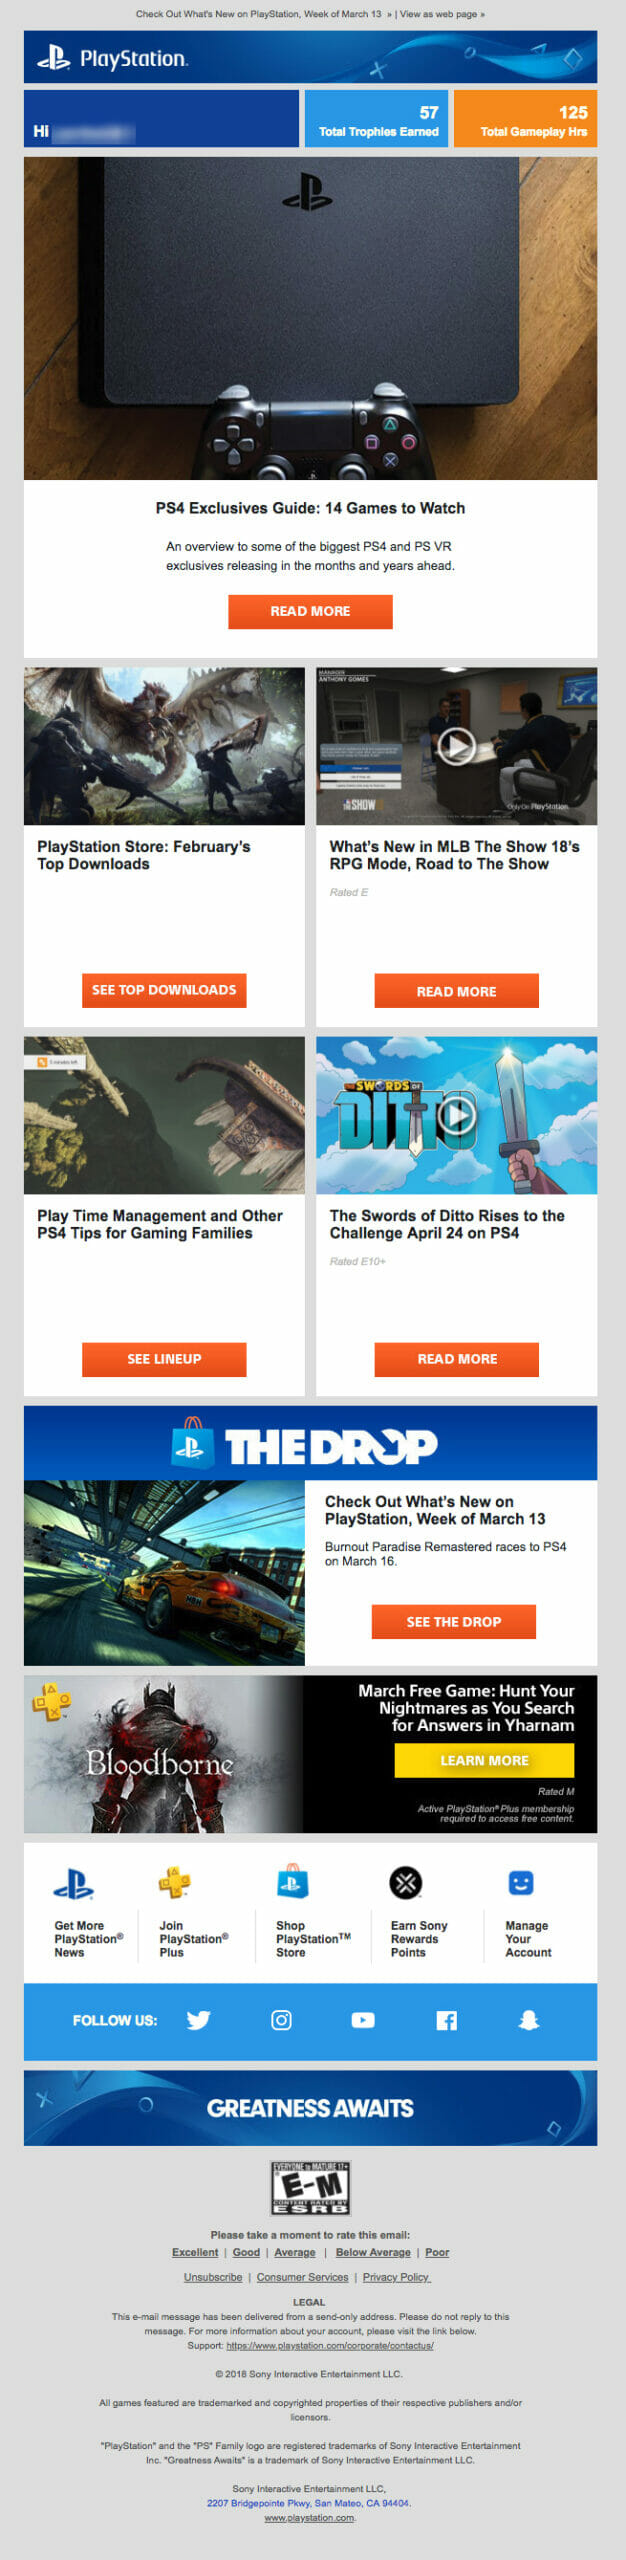 PlayStation is a Newsletter Example For Digital Video Game Stores